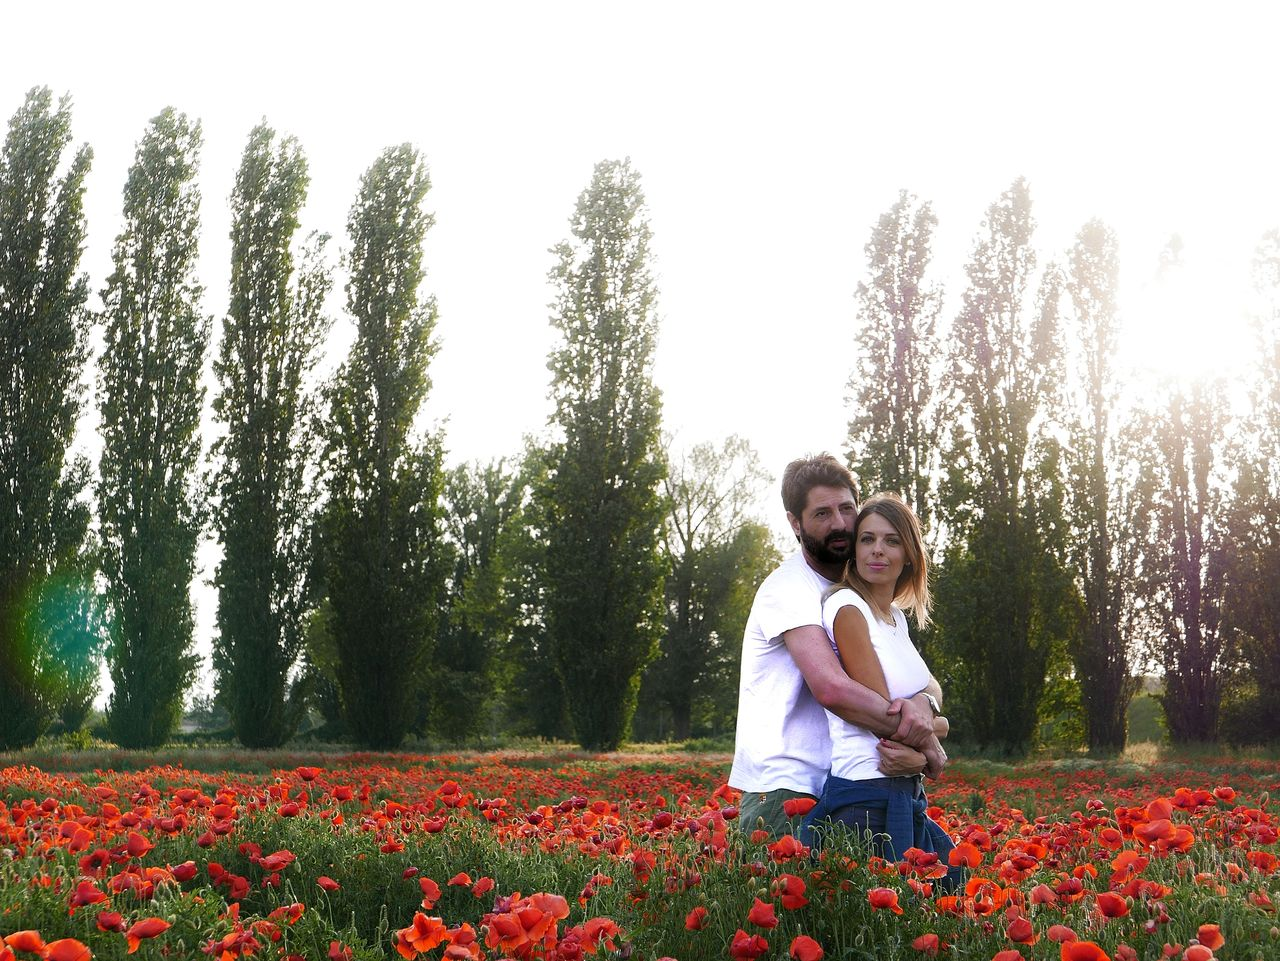 Couple standing amidst poppies on field